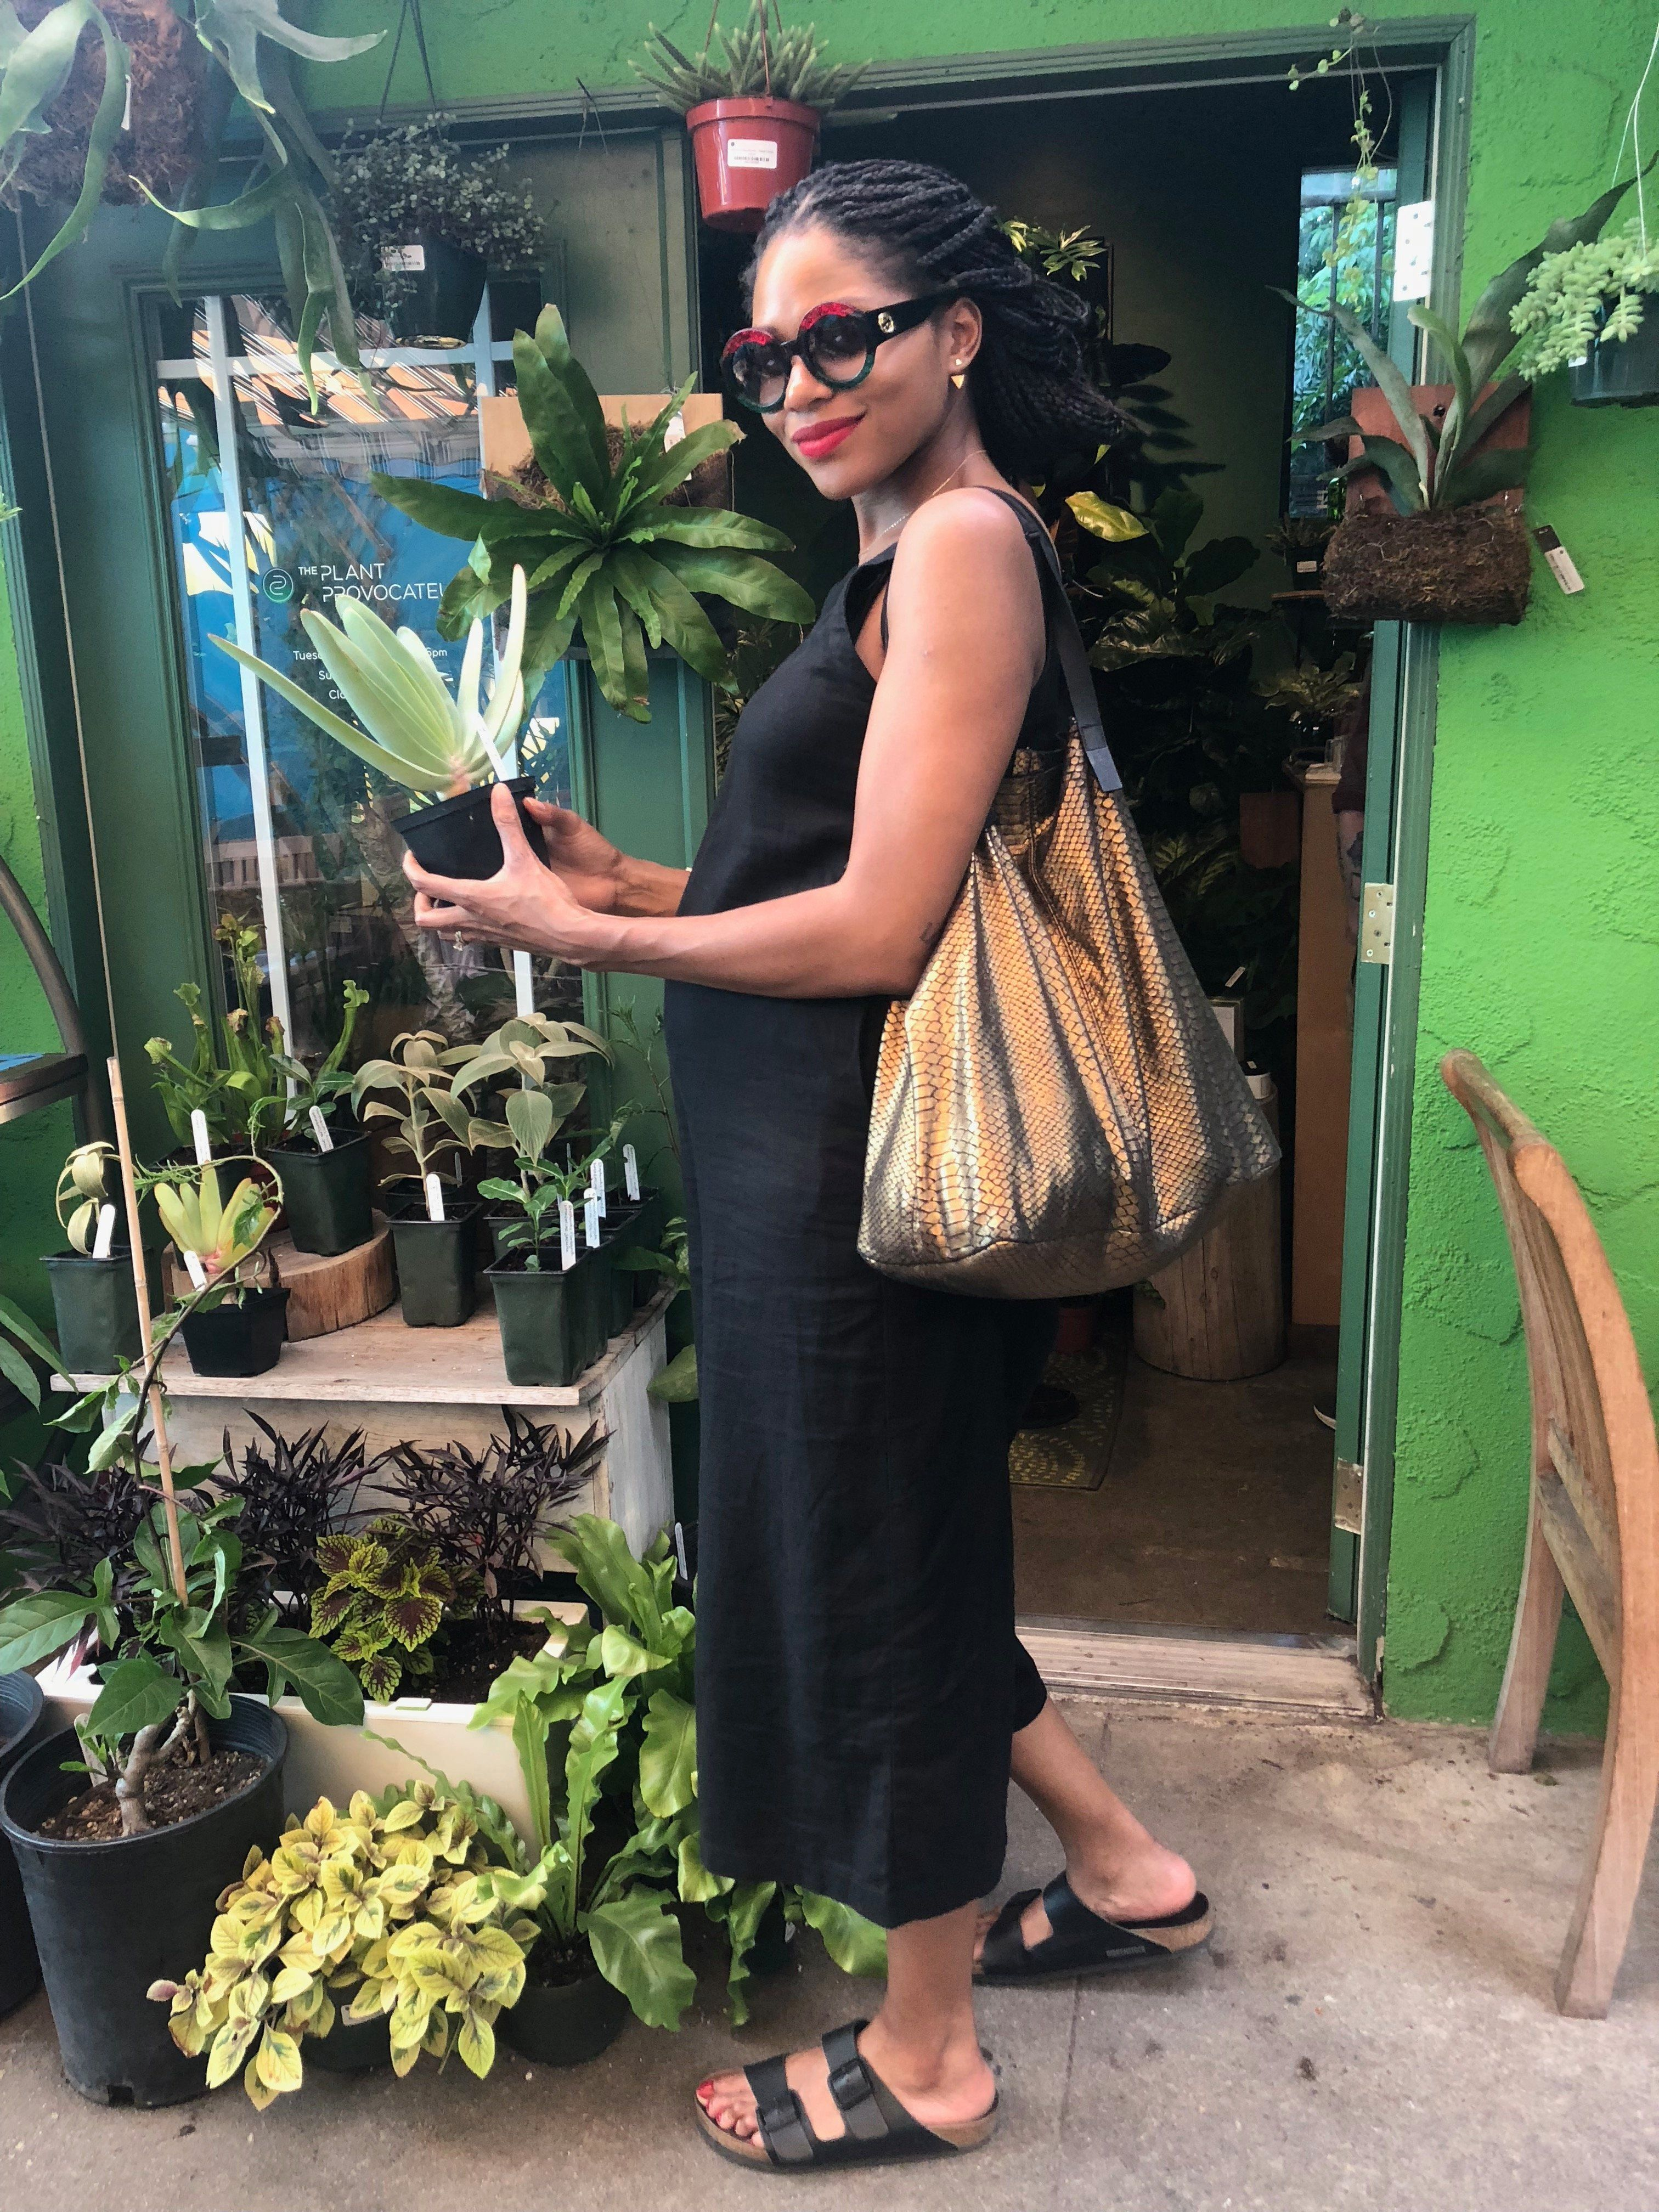 What Works For Me: 'Watering Plants Makes Me Feel